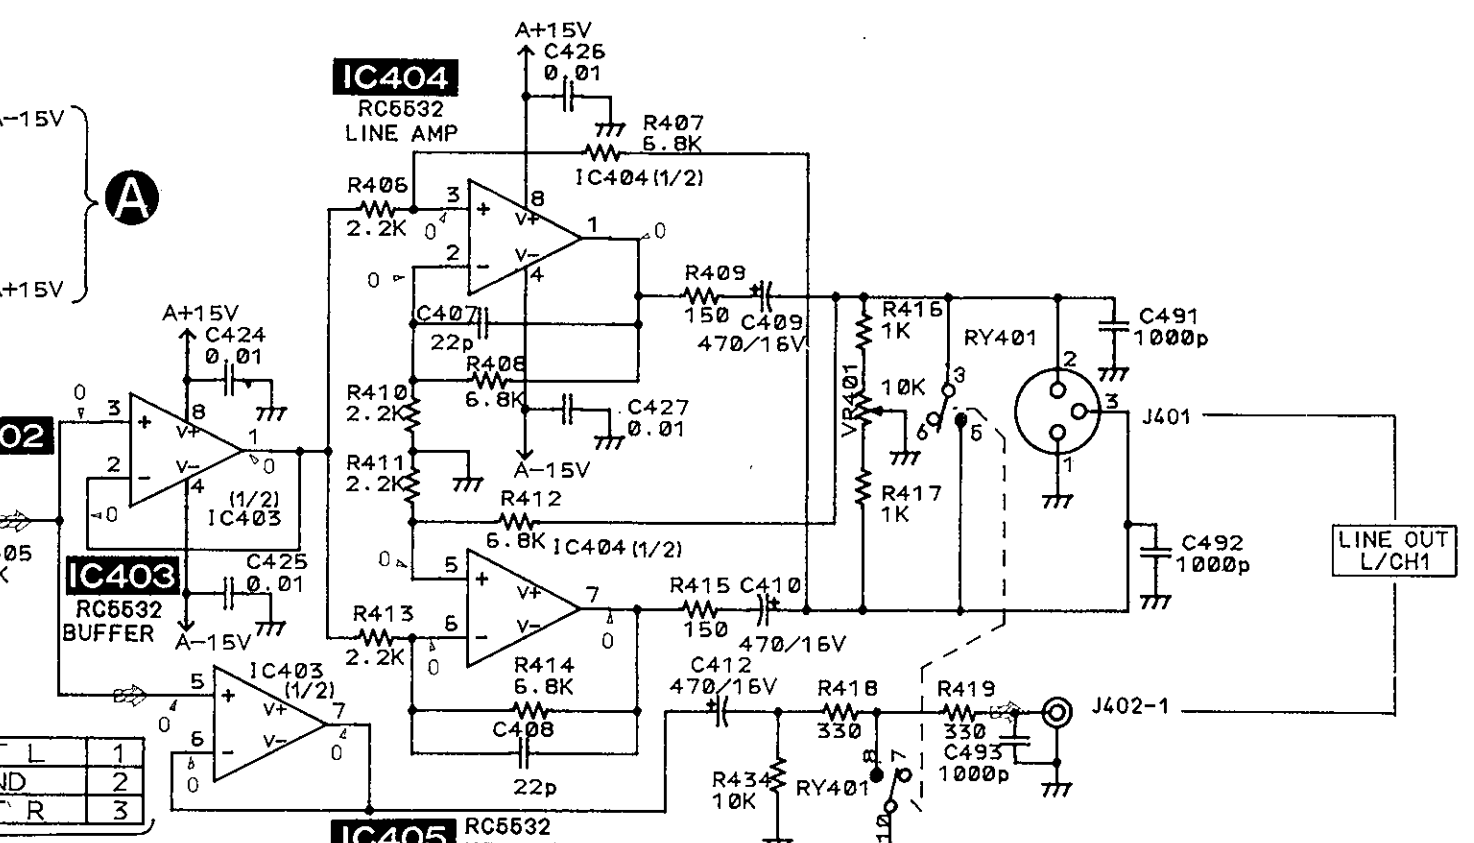 unbalanced to balanced converter for audio drv134 diy audio this one is used in my professional cd player the sony cdp 2700 ic403 is the input buffer which provides impedance match to the low pass filter of the